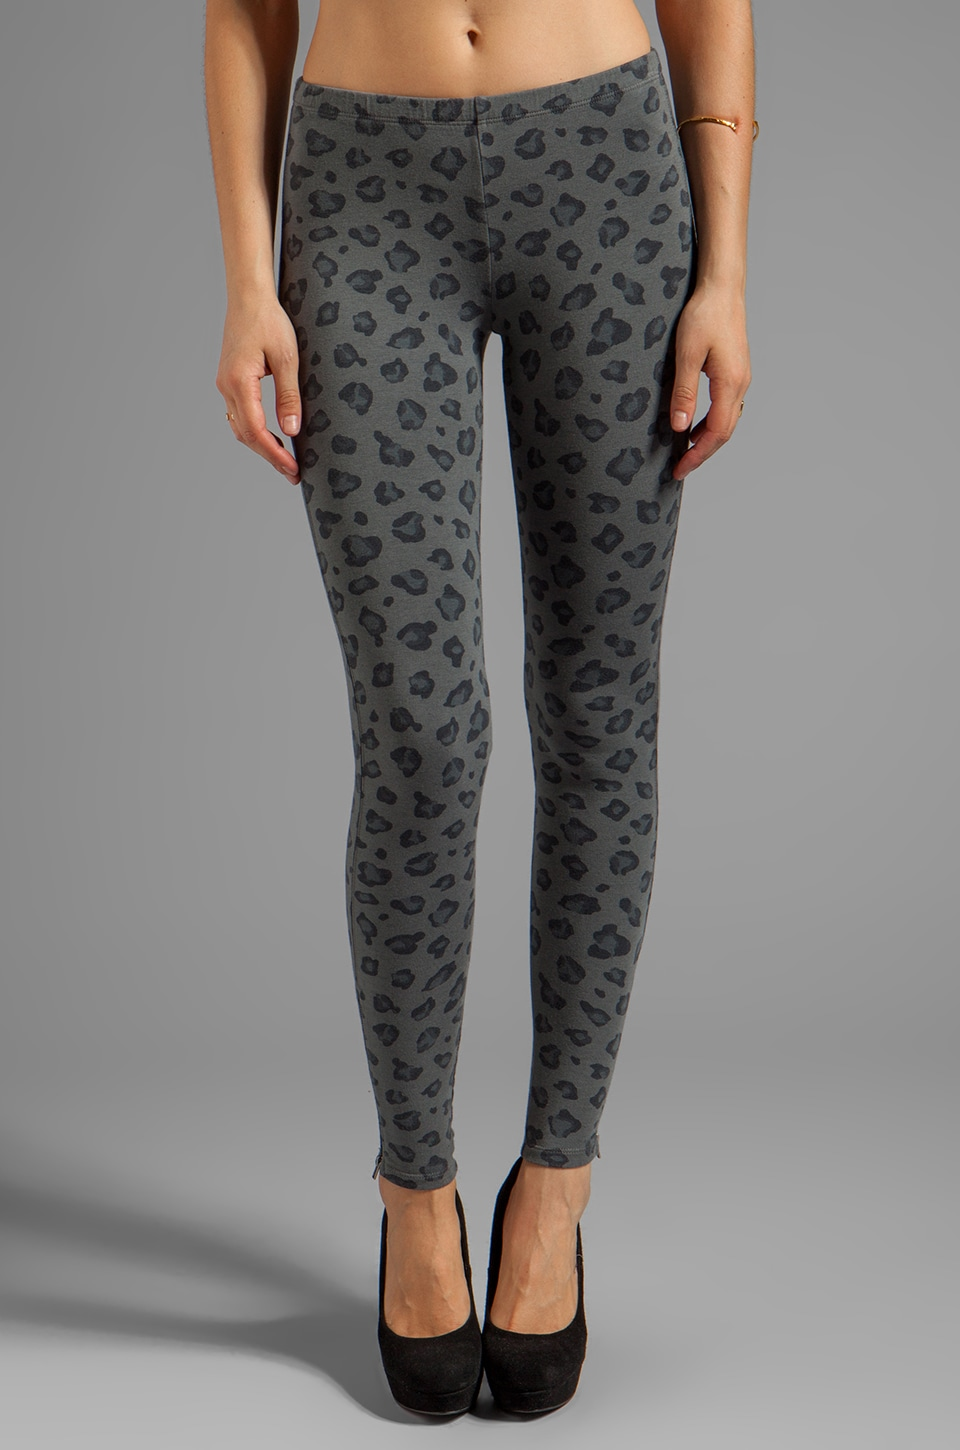 Splendid Novelty Printed Legging in River Rock